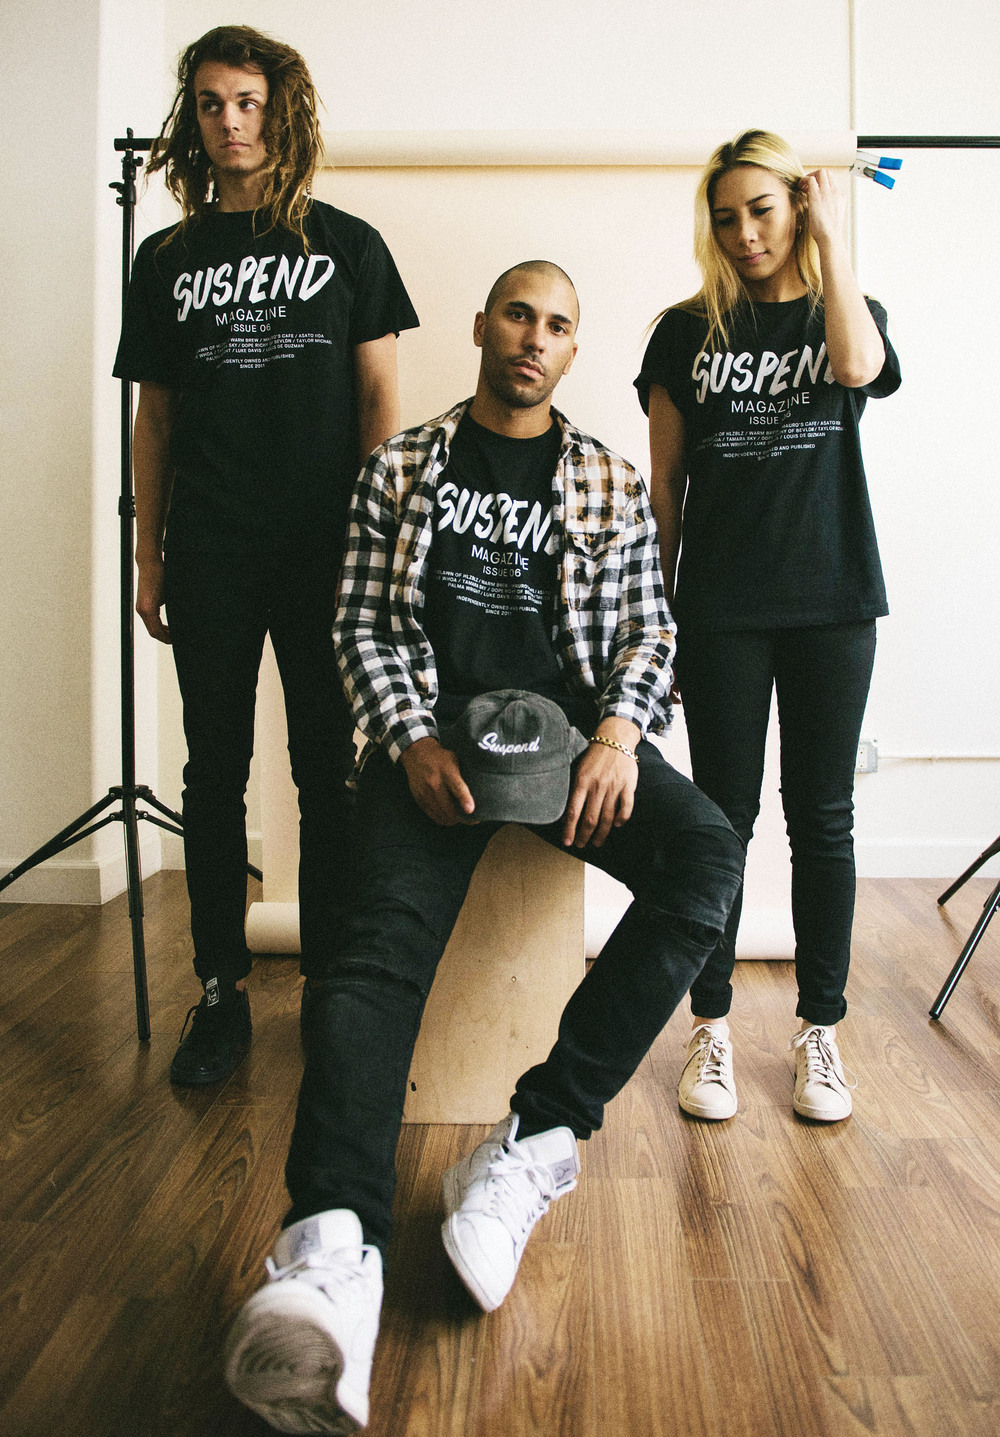 J-Mac, David, and Gilene photographed by EIC Diane Abapo for SUSPEND® Magazine.